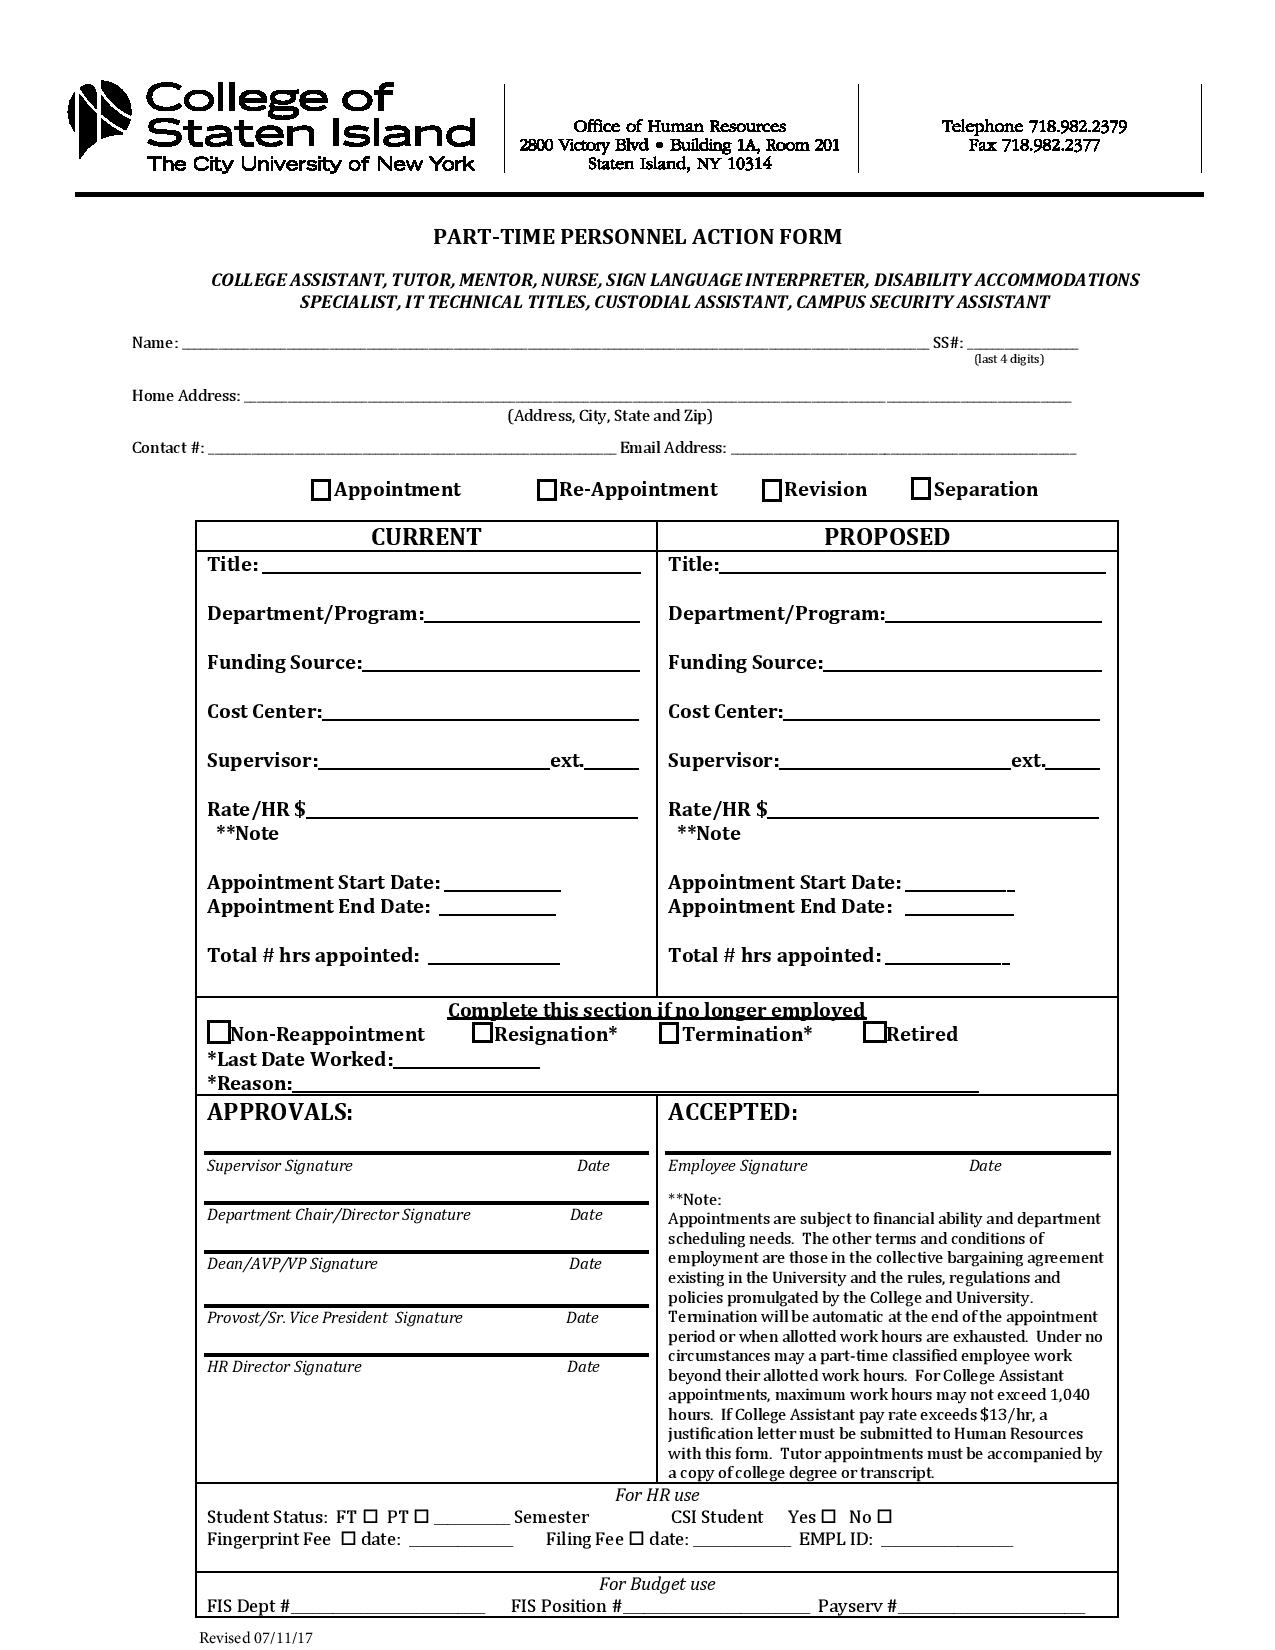 part time personnel action form page 0011